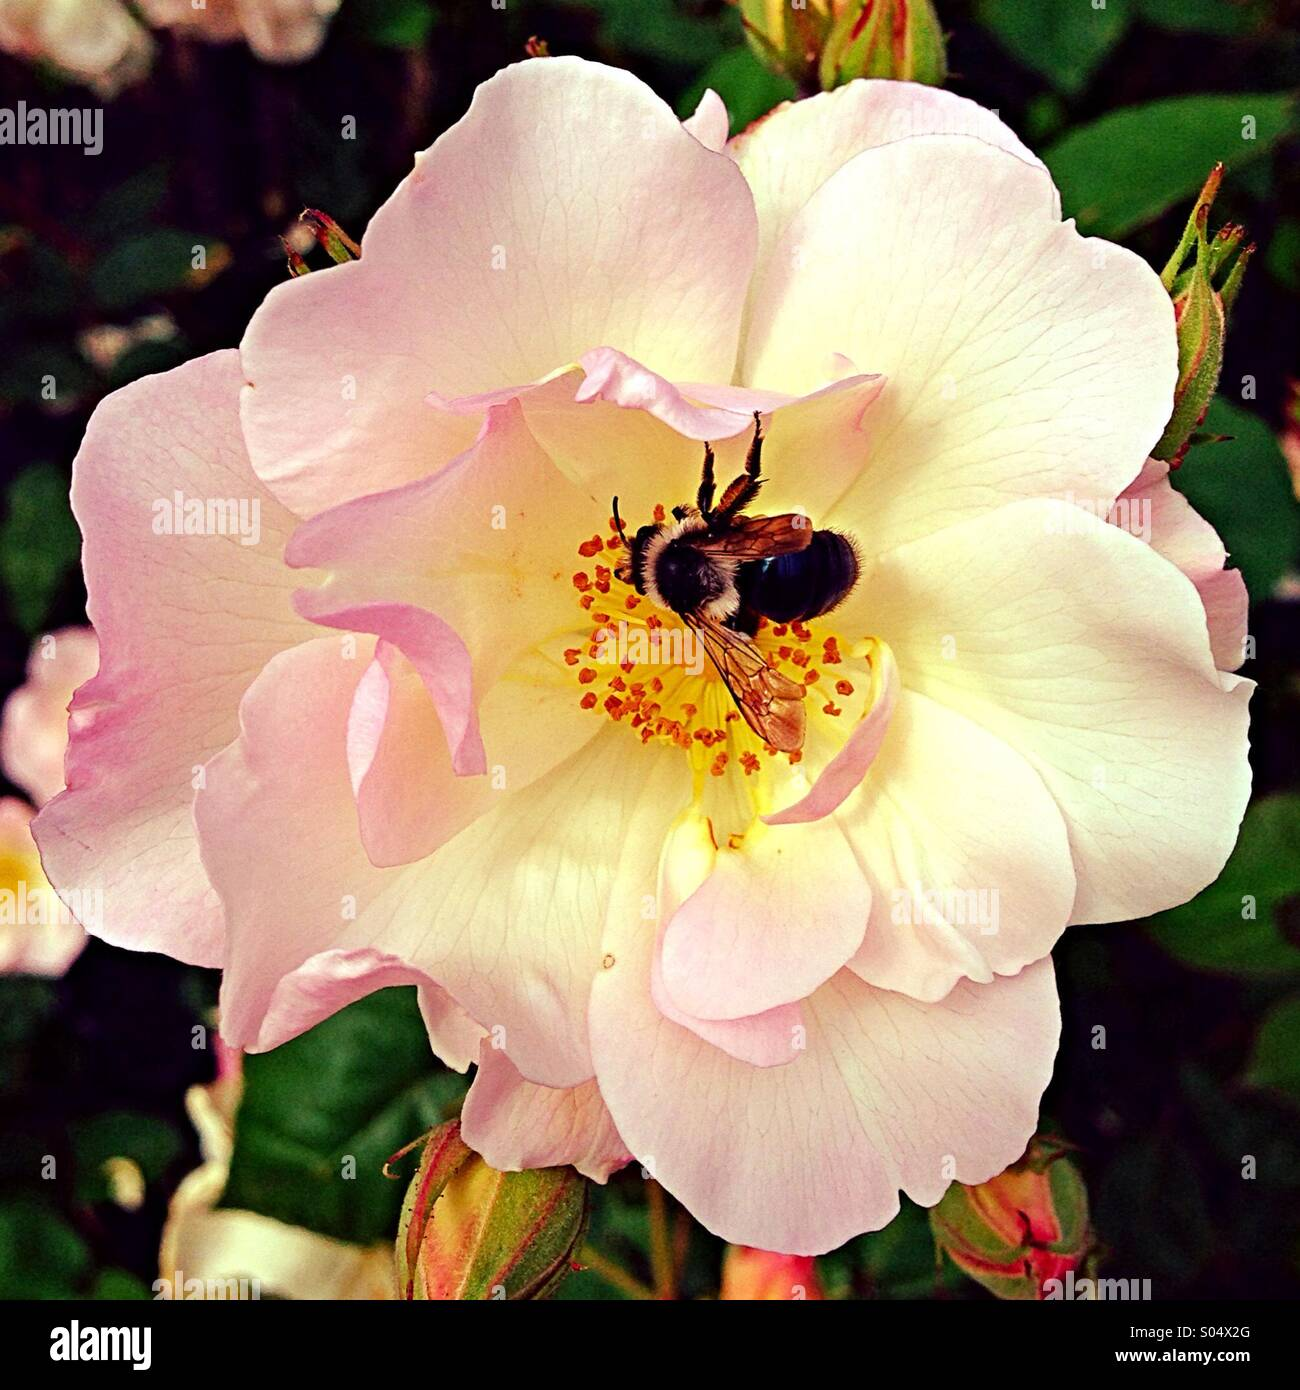 Rose being pollinated - Stock Image